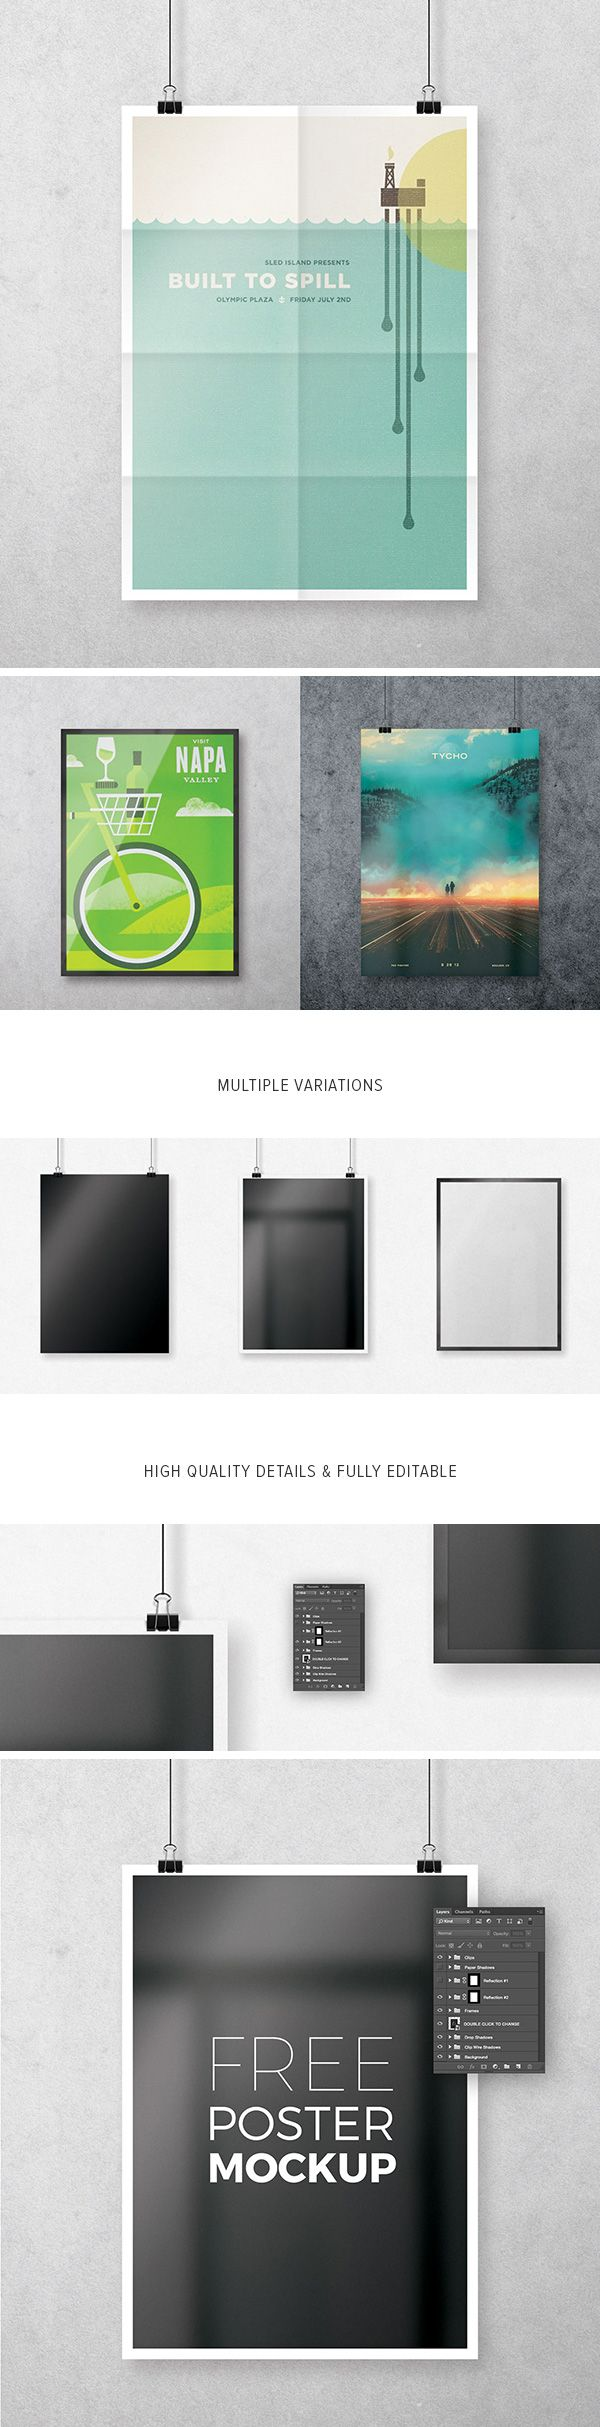 Showcase your posters, pictures, artwork or any other design with high resolution A4 Poster PSD Mockup FREE download. Have fun with it!